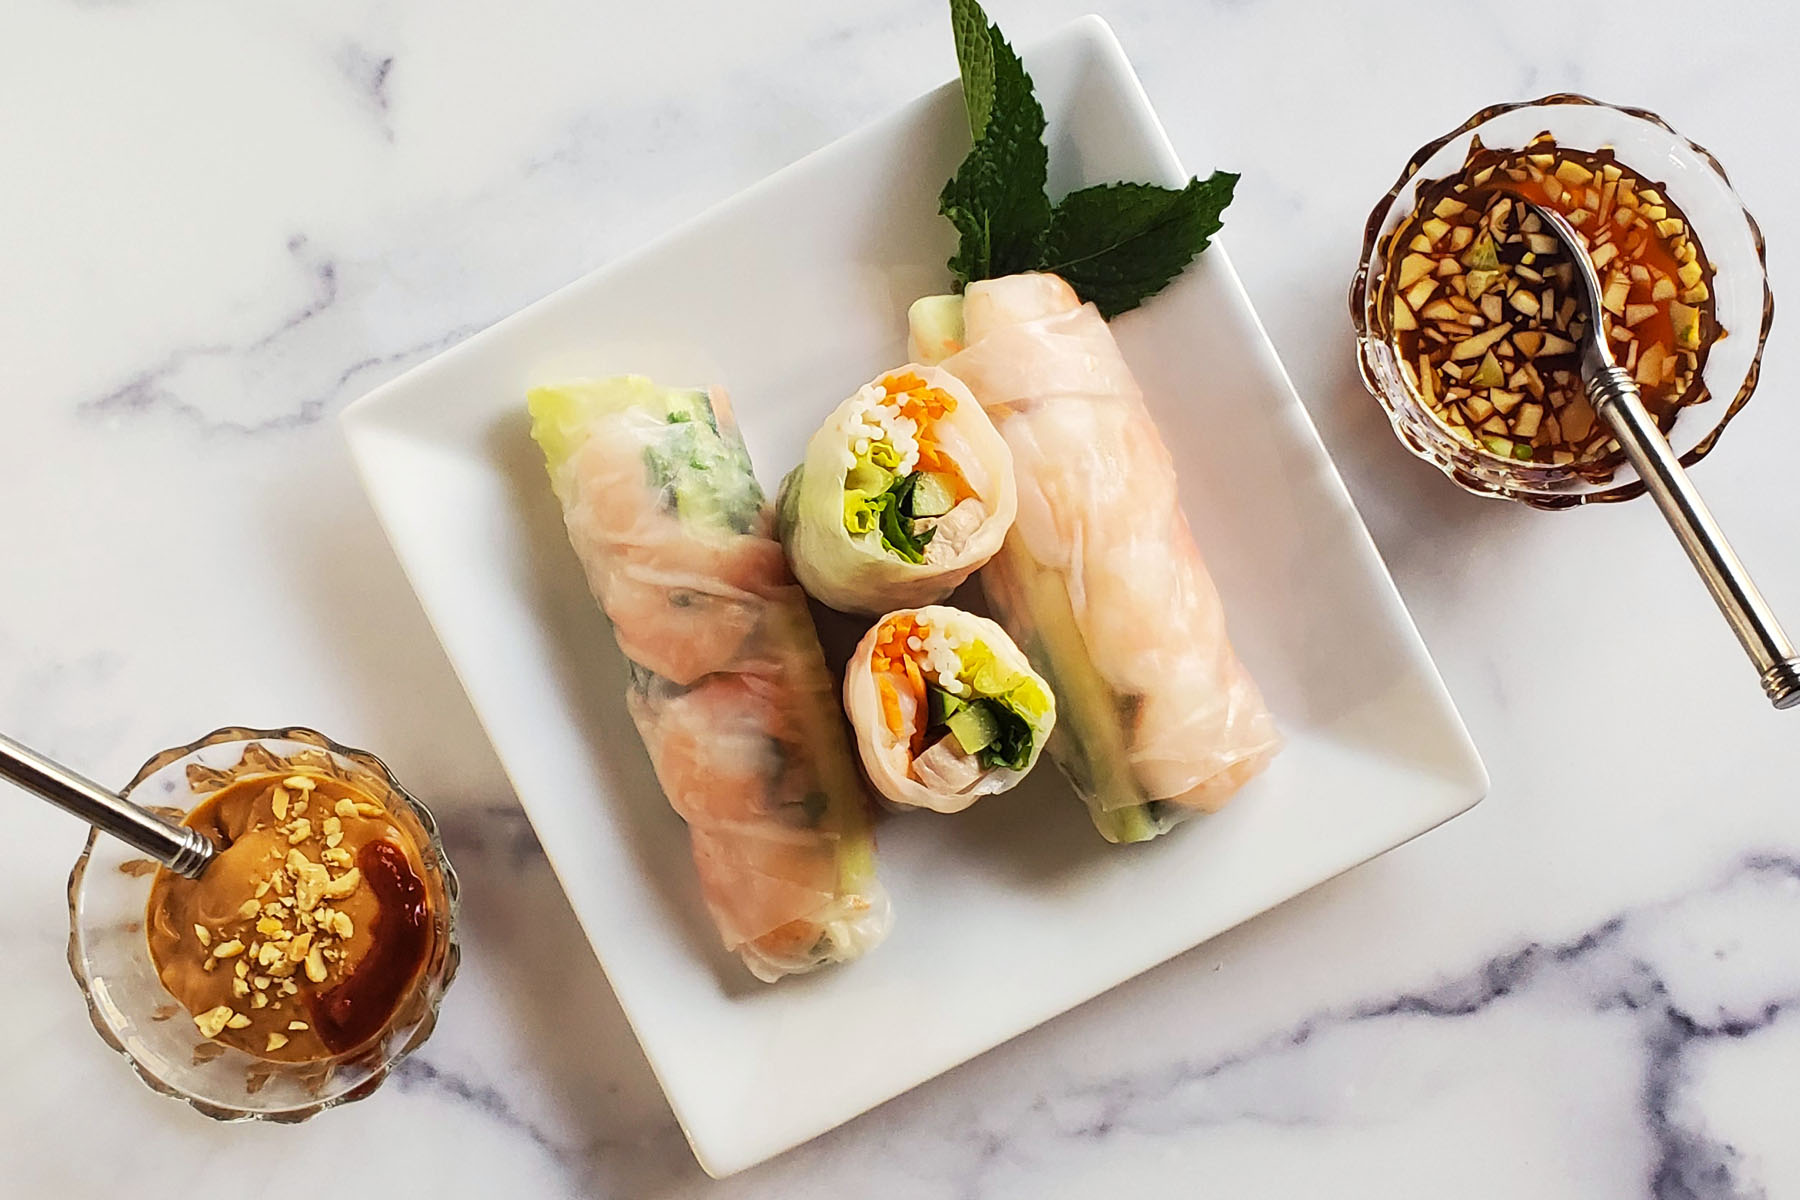 There are three Vietnamese Spring Rolls on a square, white plate. The roll in the middle is cut in half so we can see the shrimp, vegetables, pork and noodle inside. The plate is garnished with a sprig of mint leaf. On the diagonal sides, we see a peanut dipping sauce, sprinkled with crushed peanuts and sriracha on the lower left and a lighter brown colored sauce with floating pieces of mince garlic on the upper right. This is all on top of a white marble countertop.